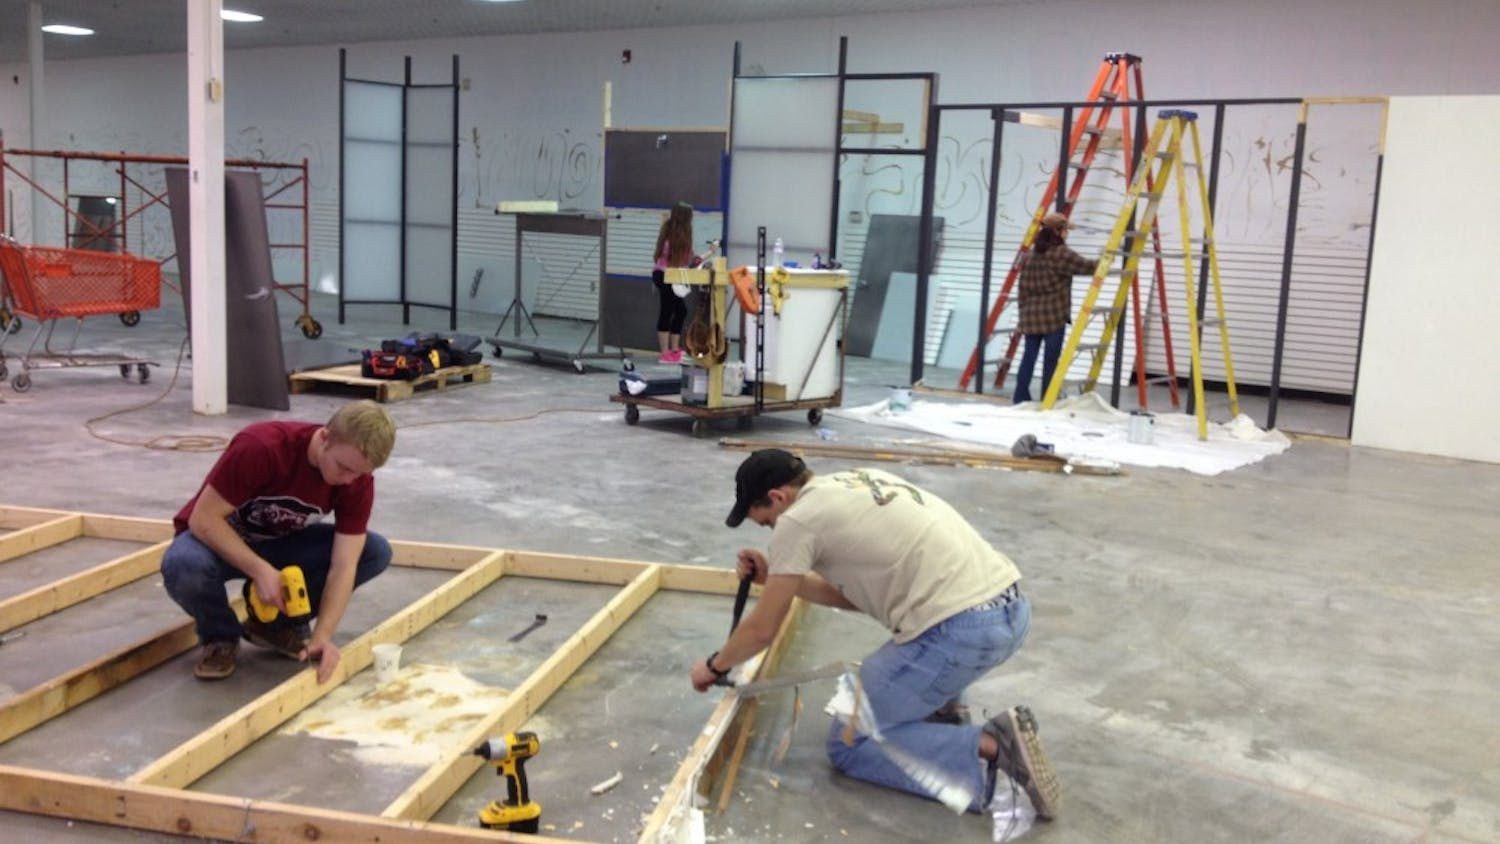 The Habitat for Humanity ReStore benefited from student laborers painting and building shelves on Monday.